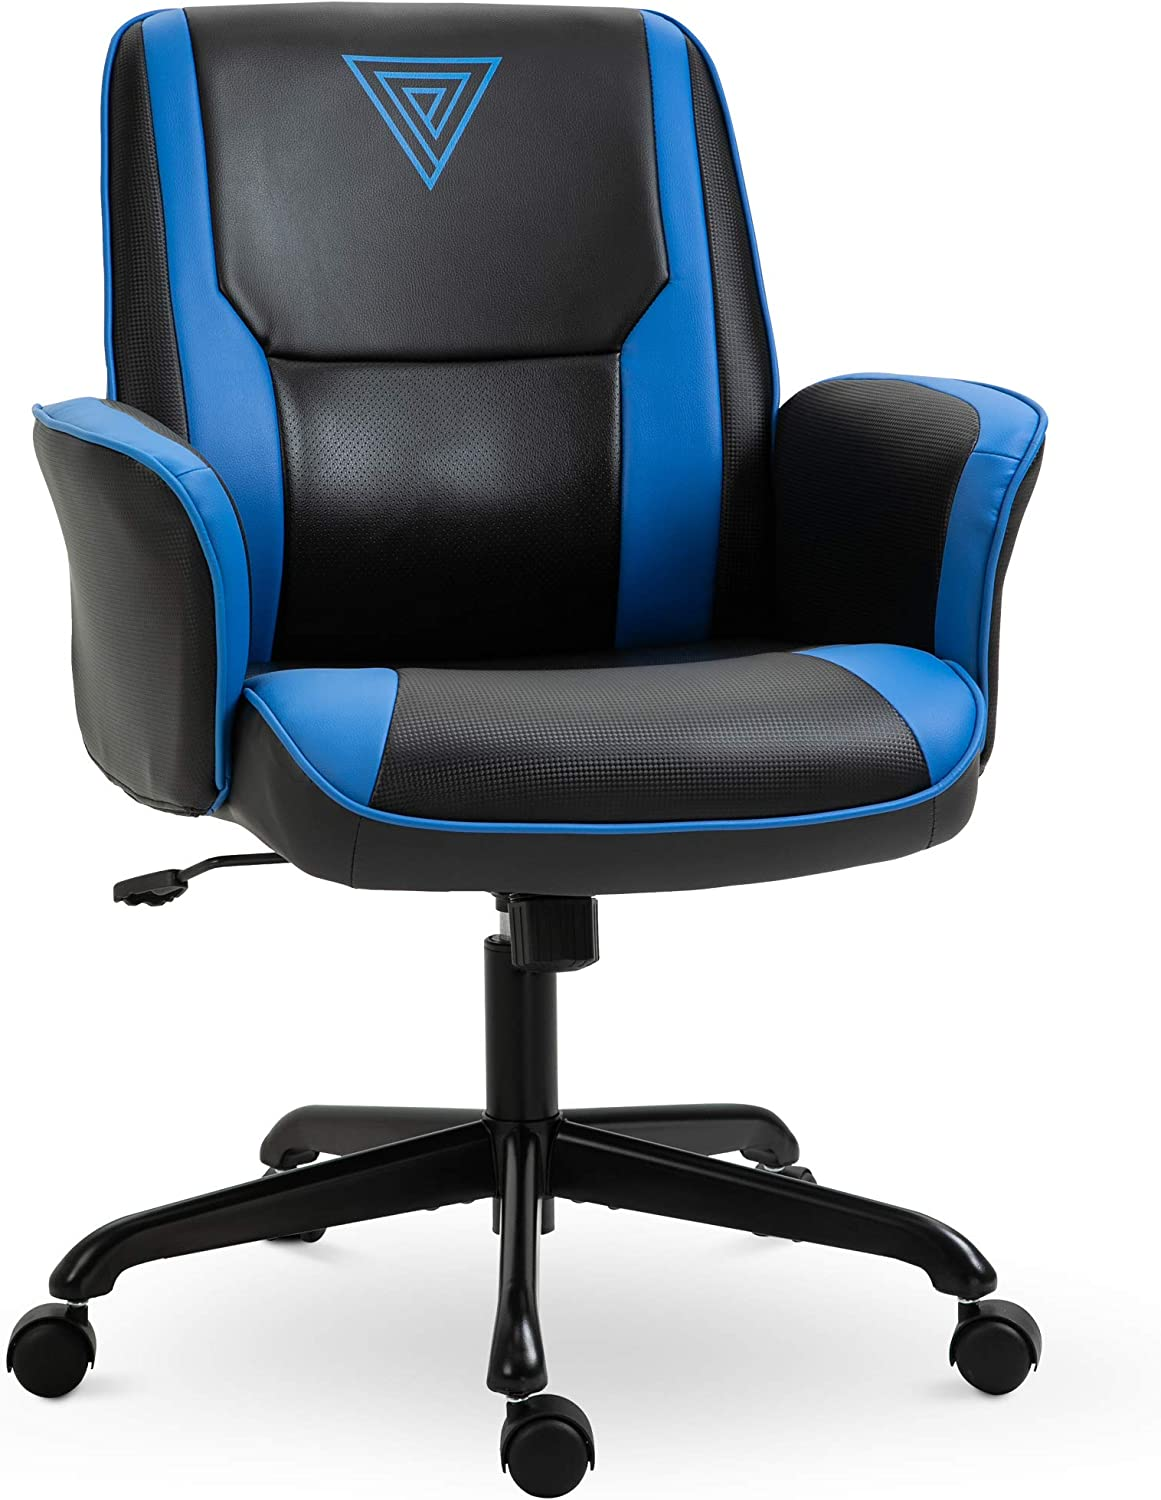 Vinsetto Breathable Faux Leather Office Computer Desk Chair for with an Adjustable Height & a Unique Racing Style, Blue